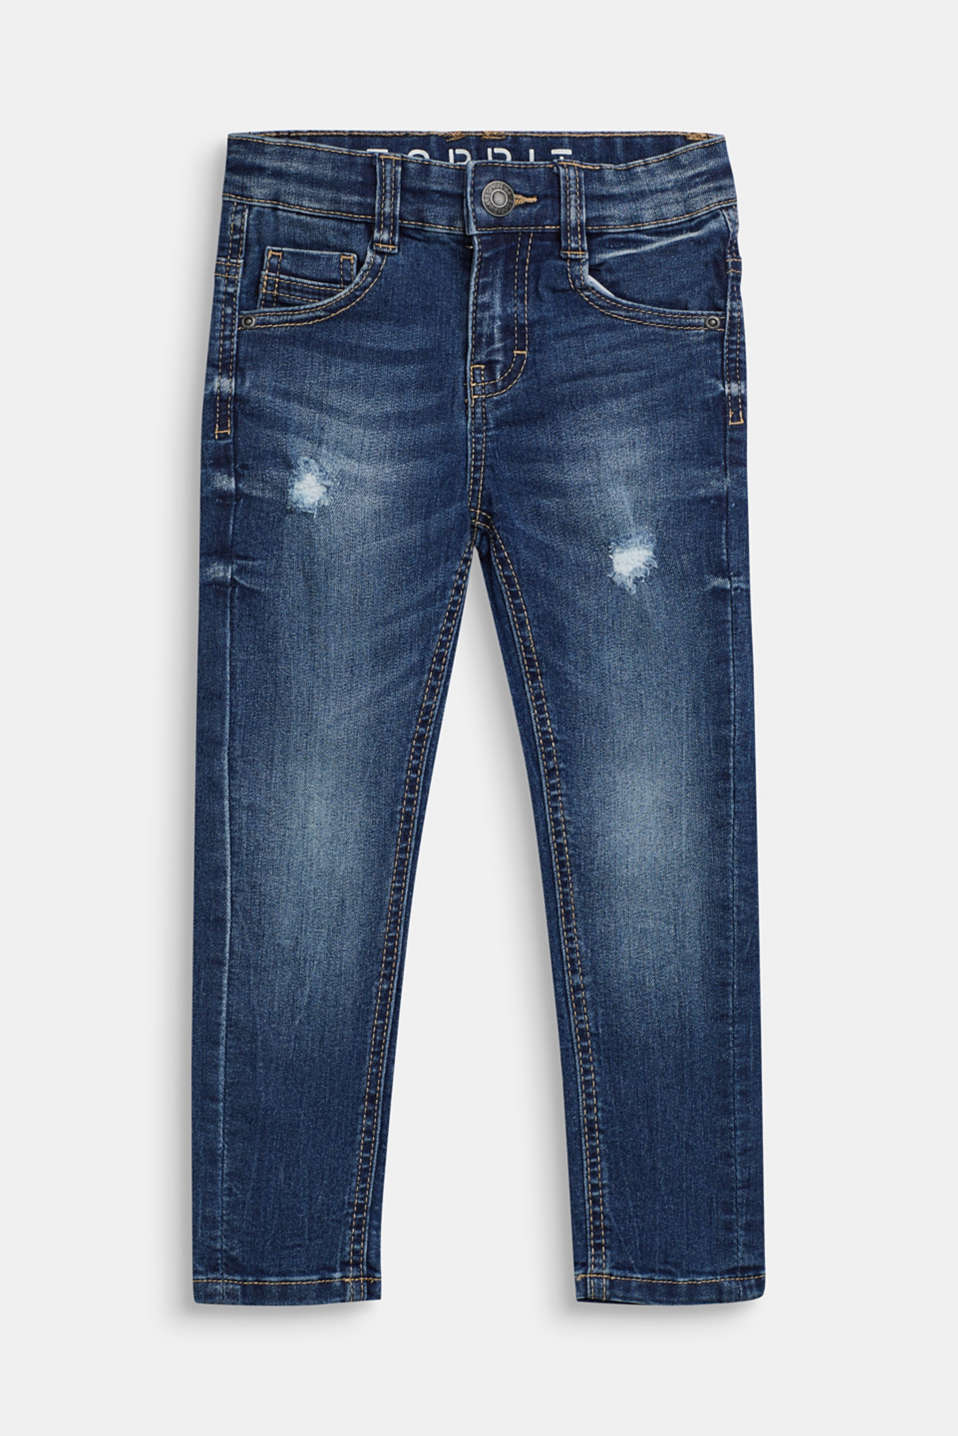 Esprit - Vintage-look stretch jeans